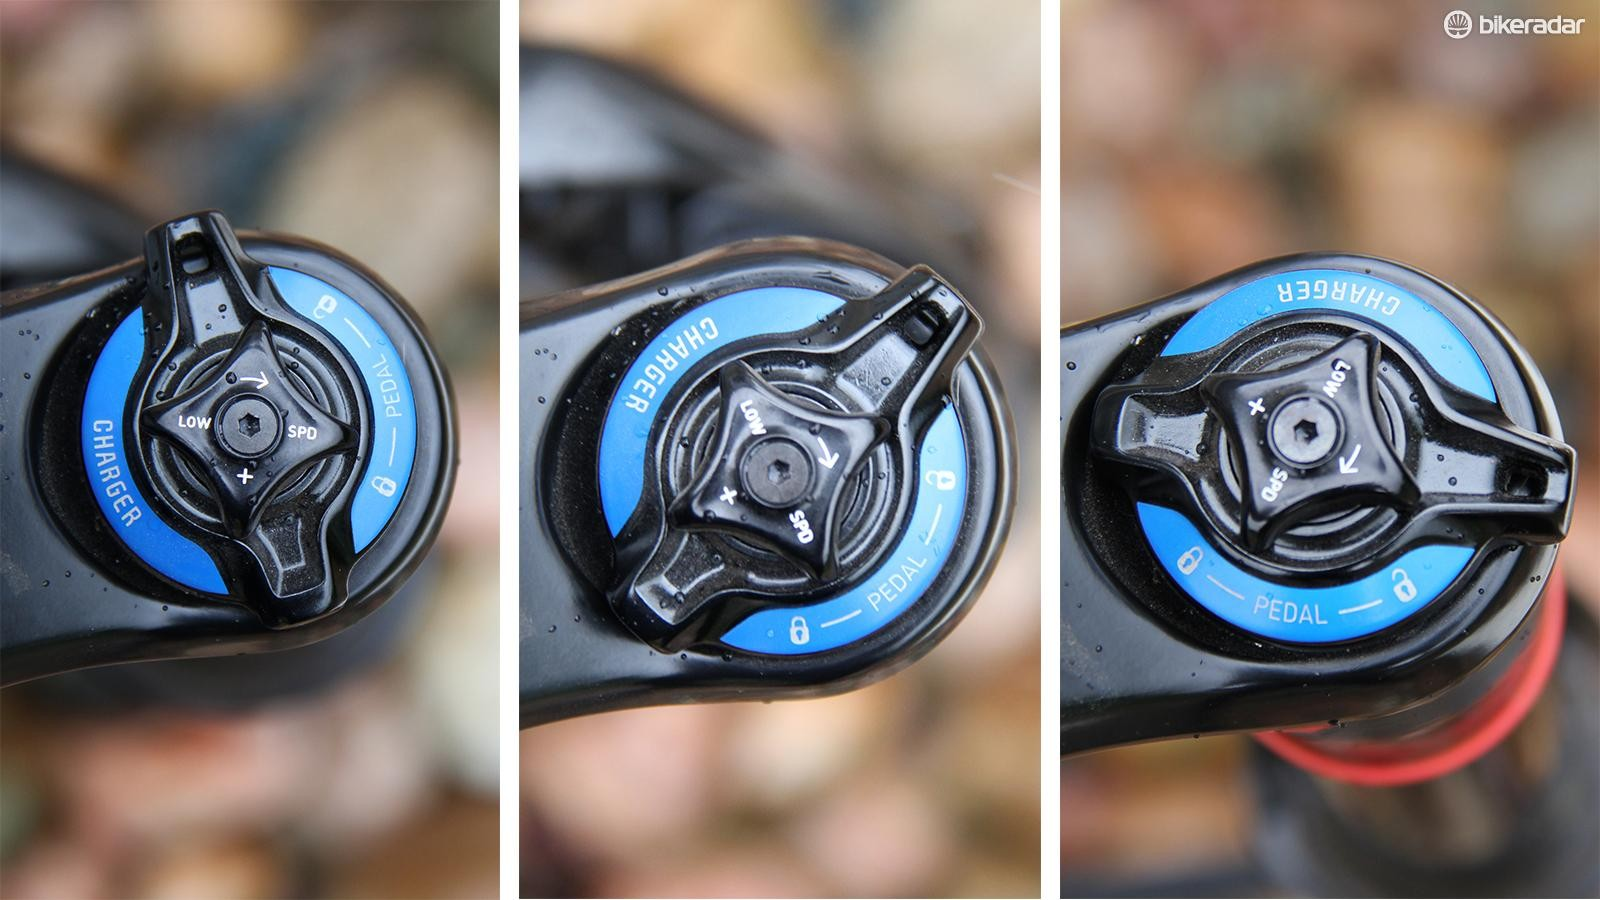 The compression adjustment on the RockShox Pike has an adjustable open position (left), a fixed, pedal-friendly compression mode (middle) and a fully locked-out mode (right)